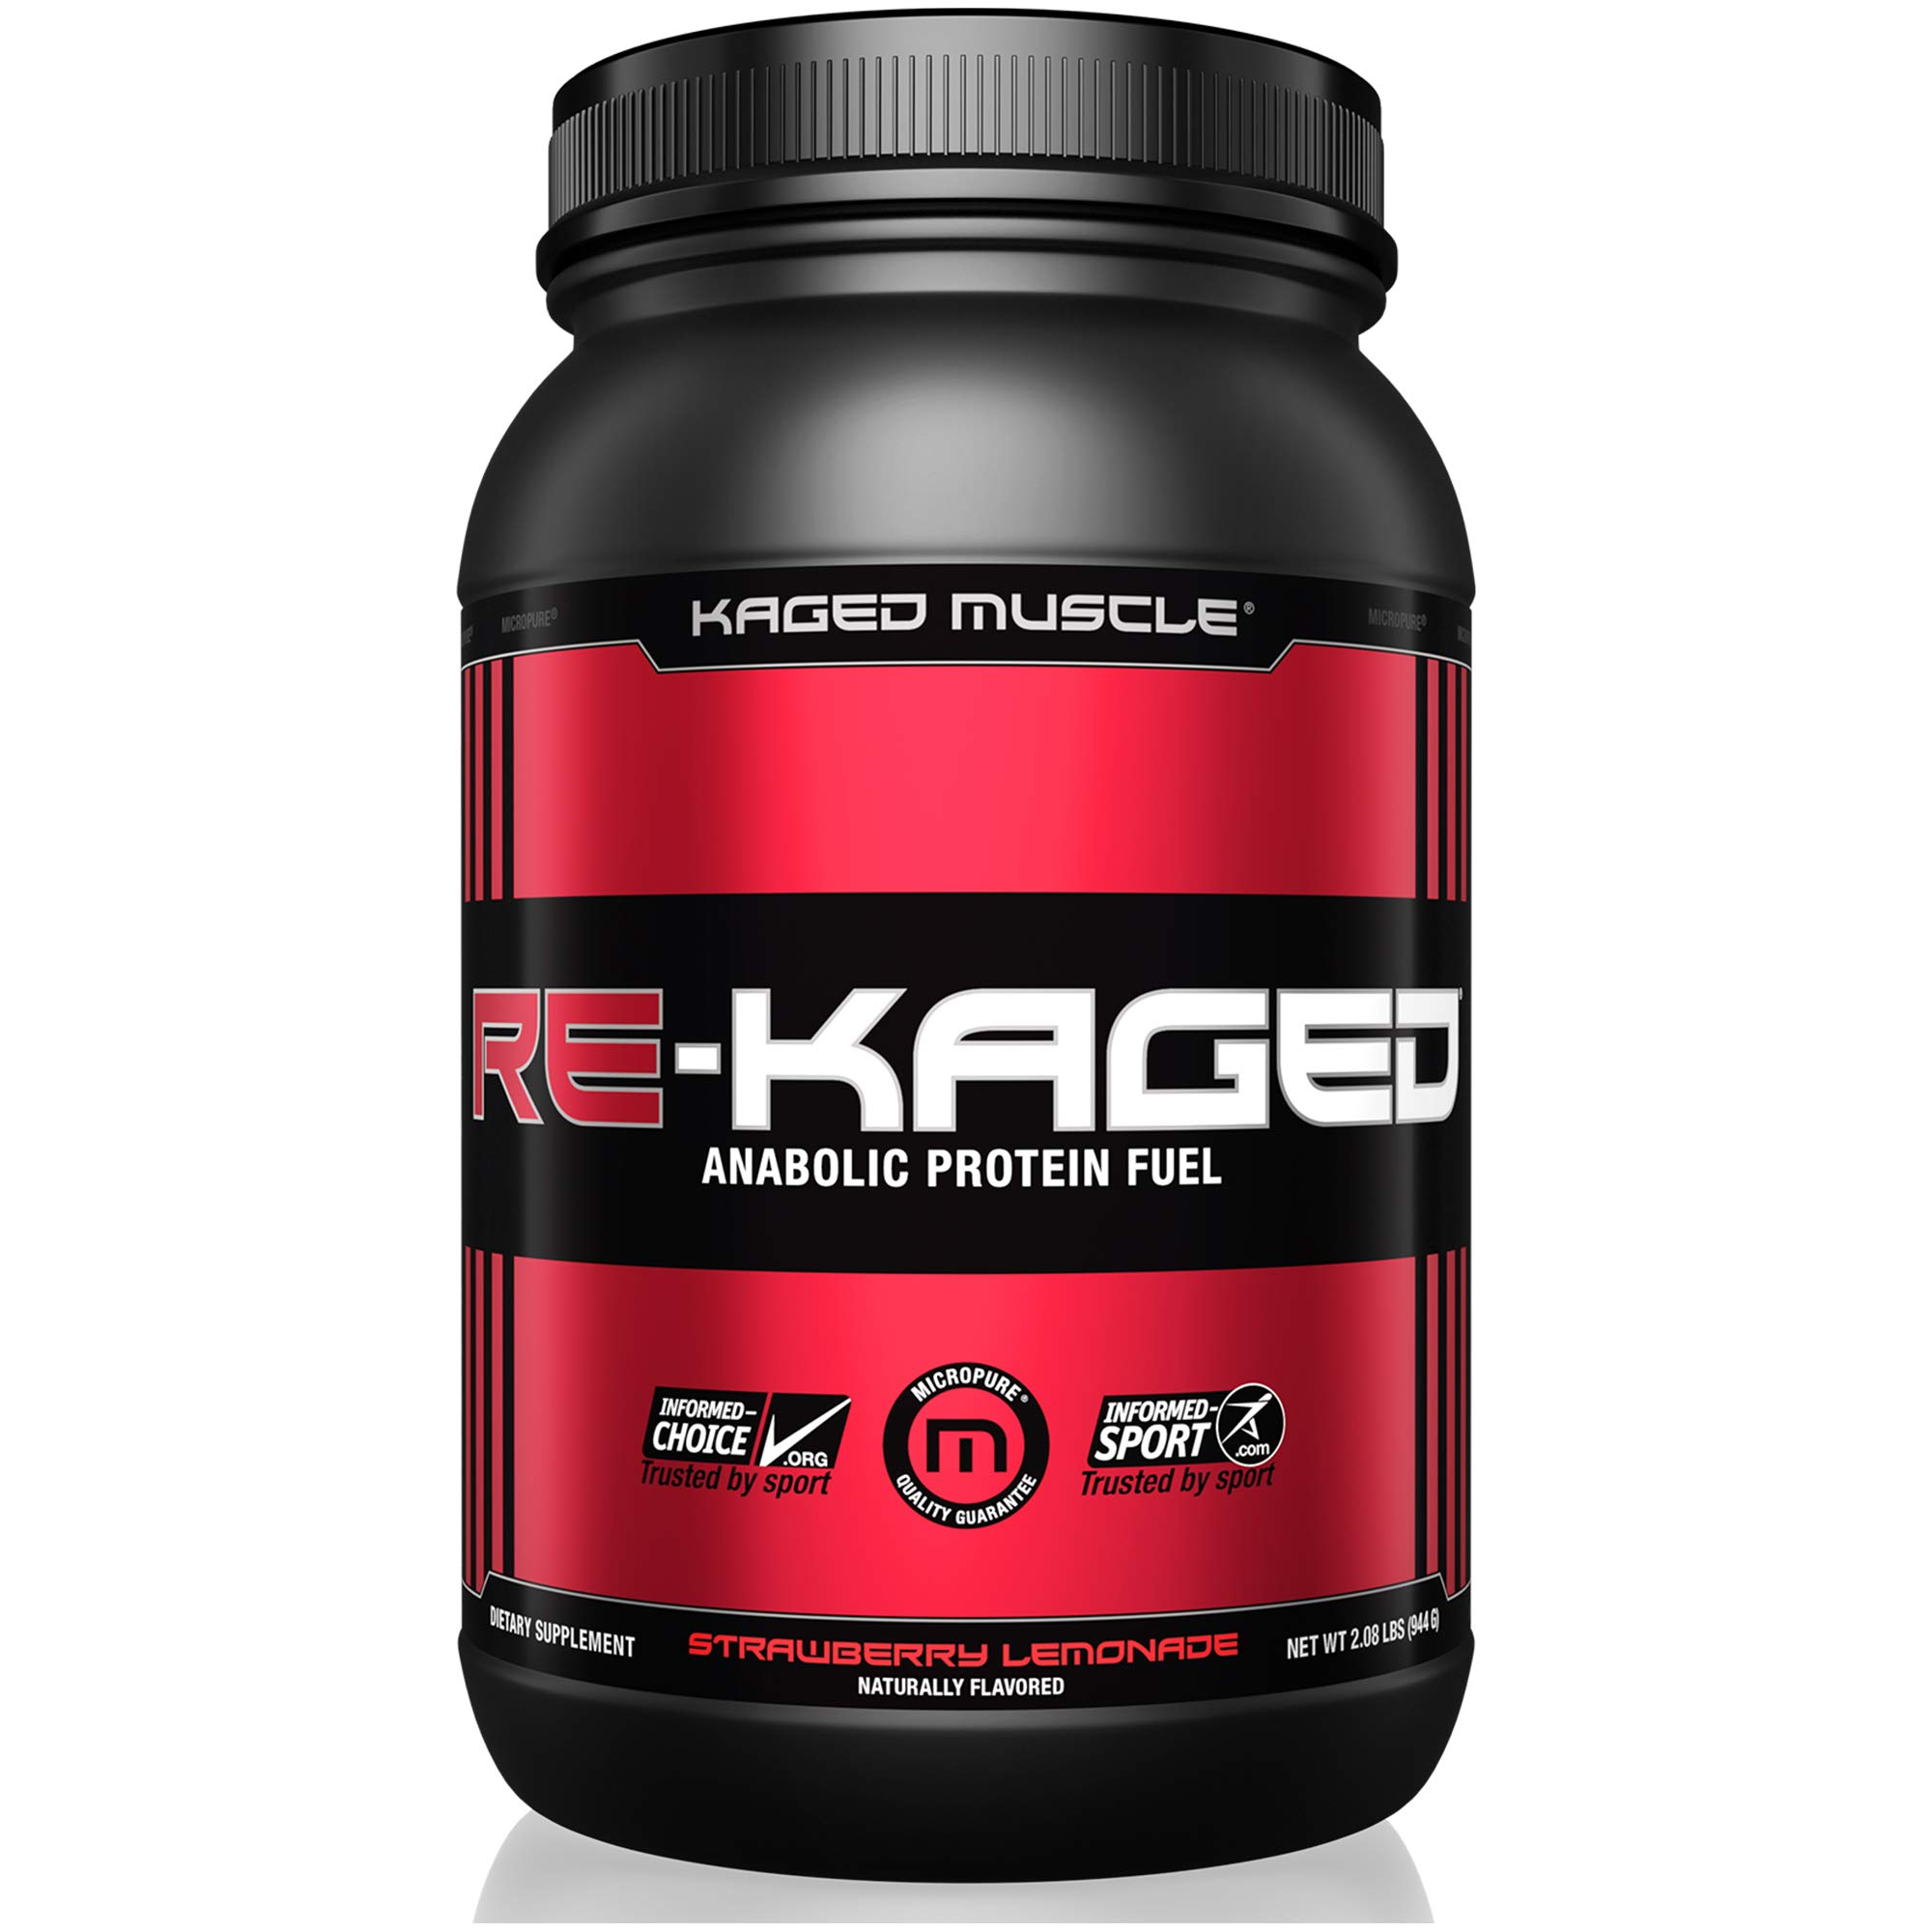 KAGED MUSCLE, RE-KAGED Whey Protein Powder, Post Workout Recovery, BCAA's, EAA's, Creatine HCl, Glutamine, Betaine, Natural Flavors, Strawberry Lemonade, 20 Servings by Kaged Muscle